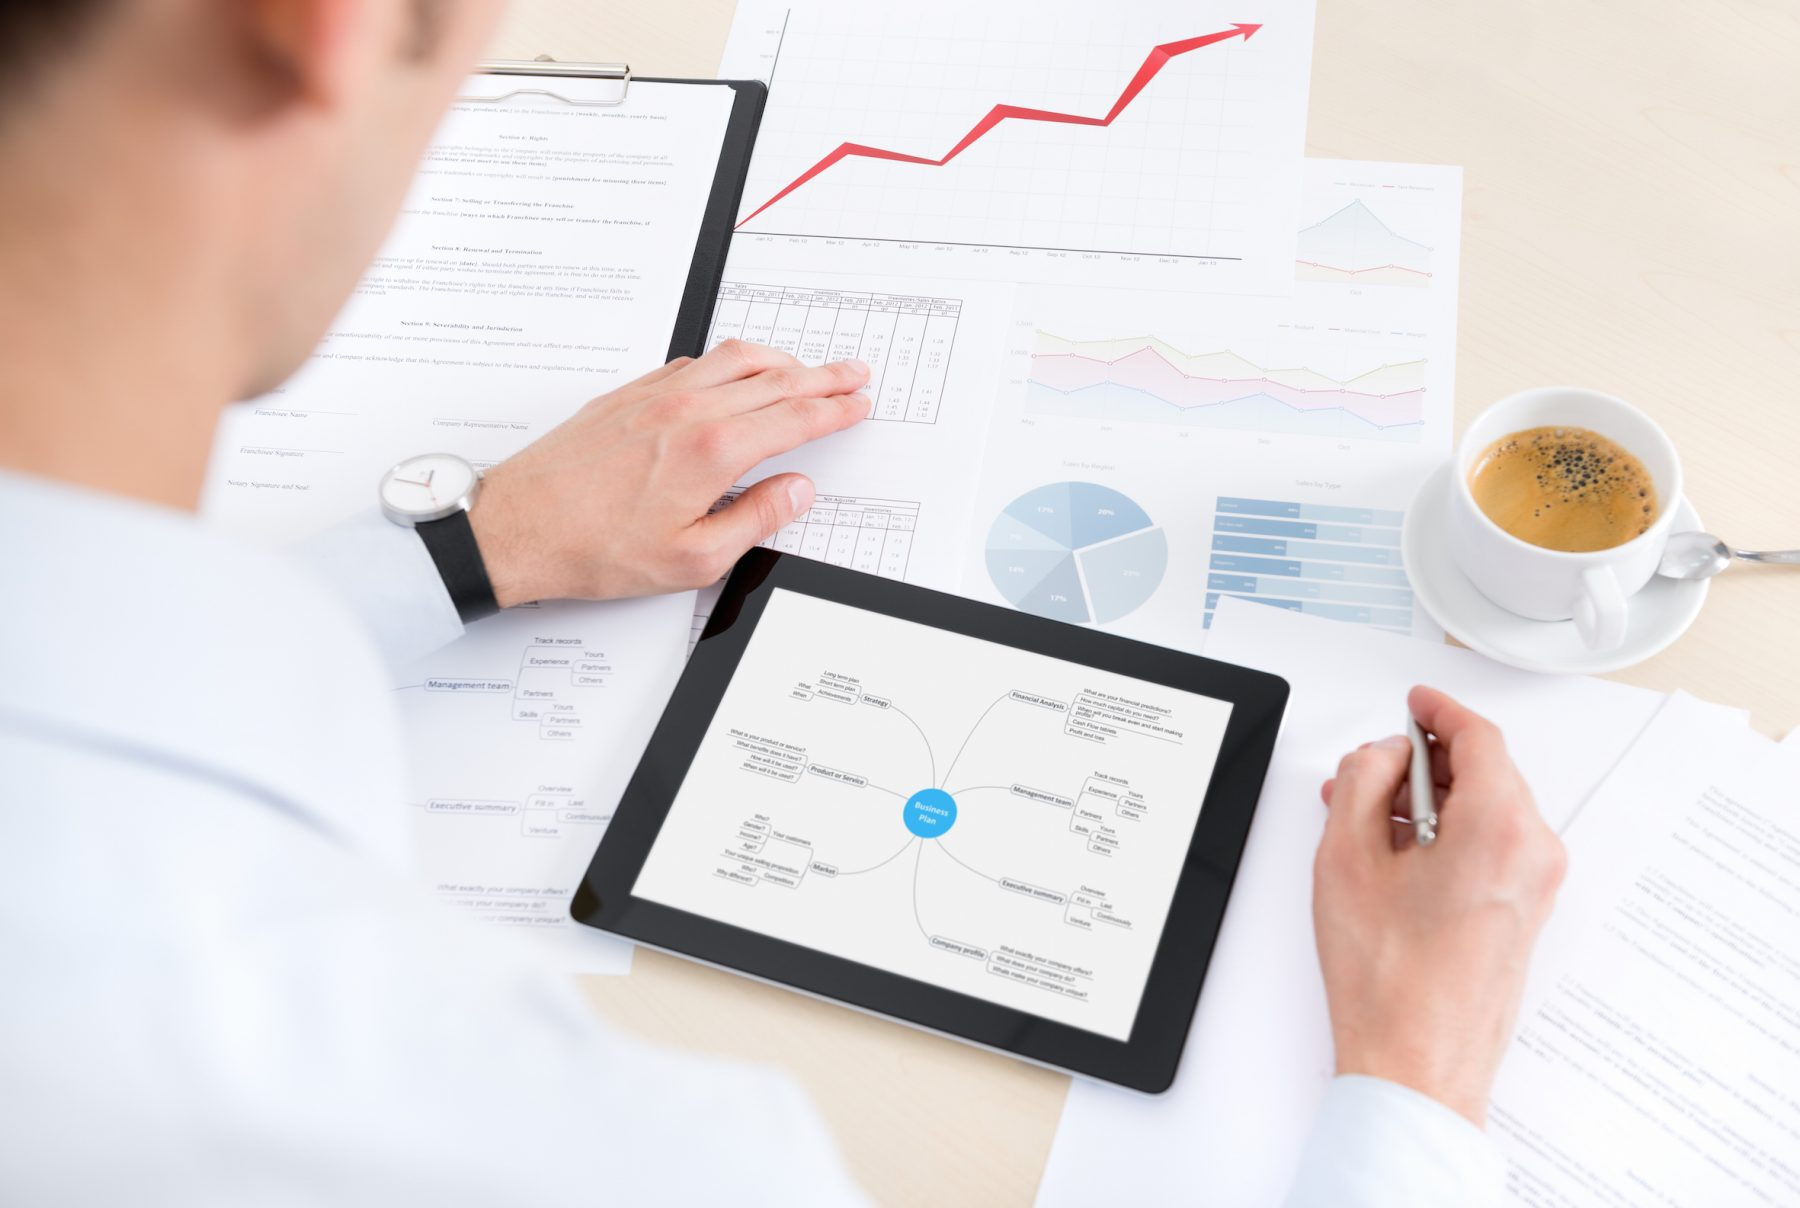 Businessman at the workplace working with documents and using modern apple ipad with mind map graphic.